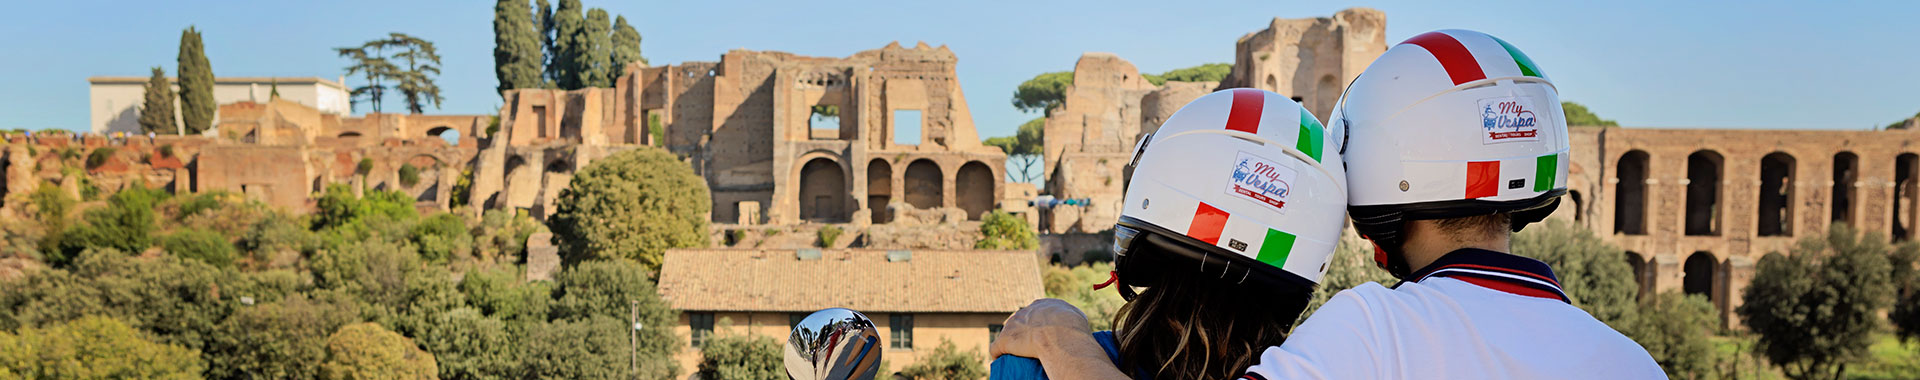 My Vespa Tours Rome - About